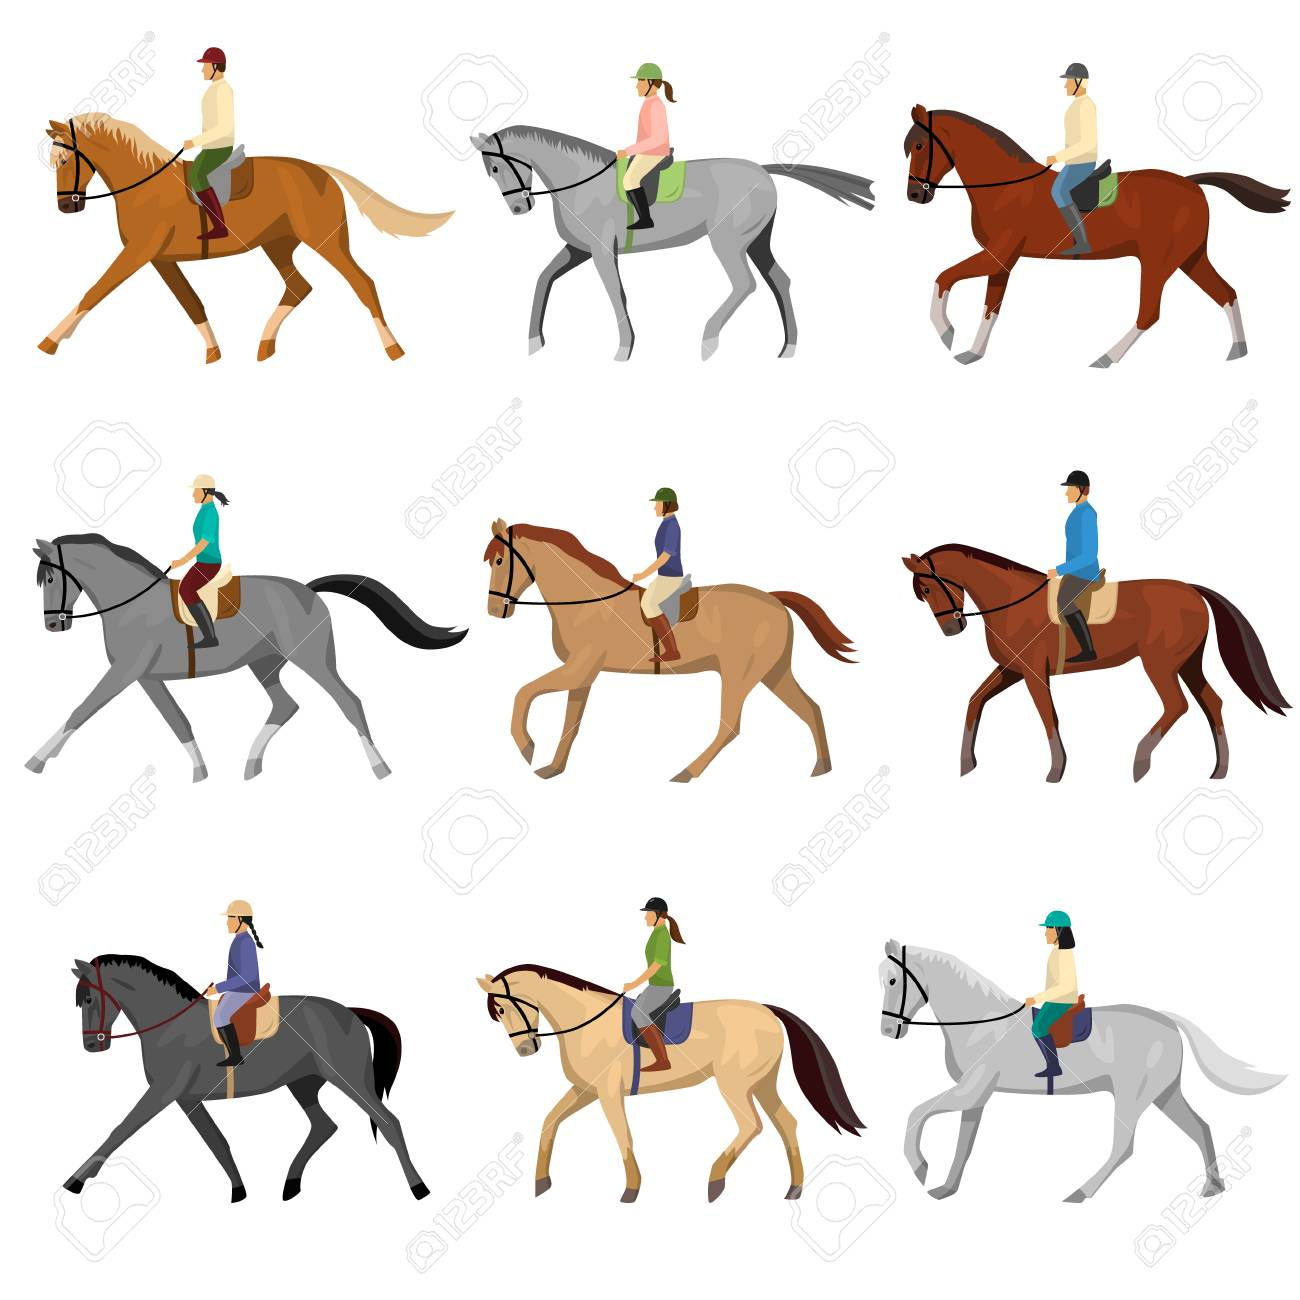 Man and woman in sportswear and helmet riding horse isolated against white background. Riding lesson, sport, hobby. Equestrian sport training, jockey horseback ride - 118610505